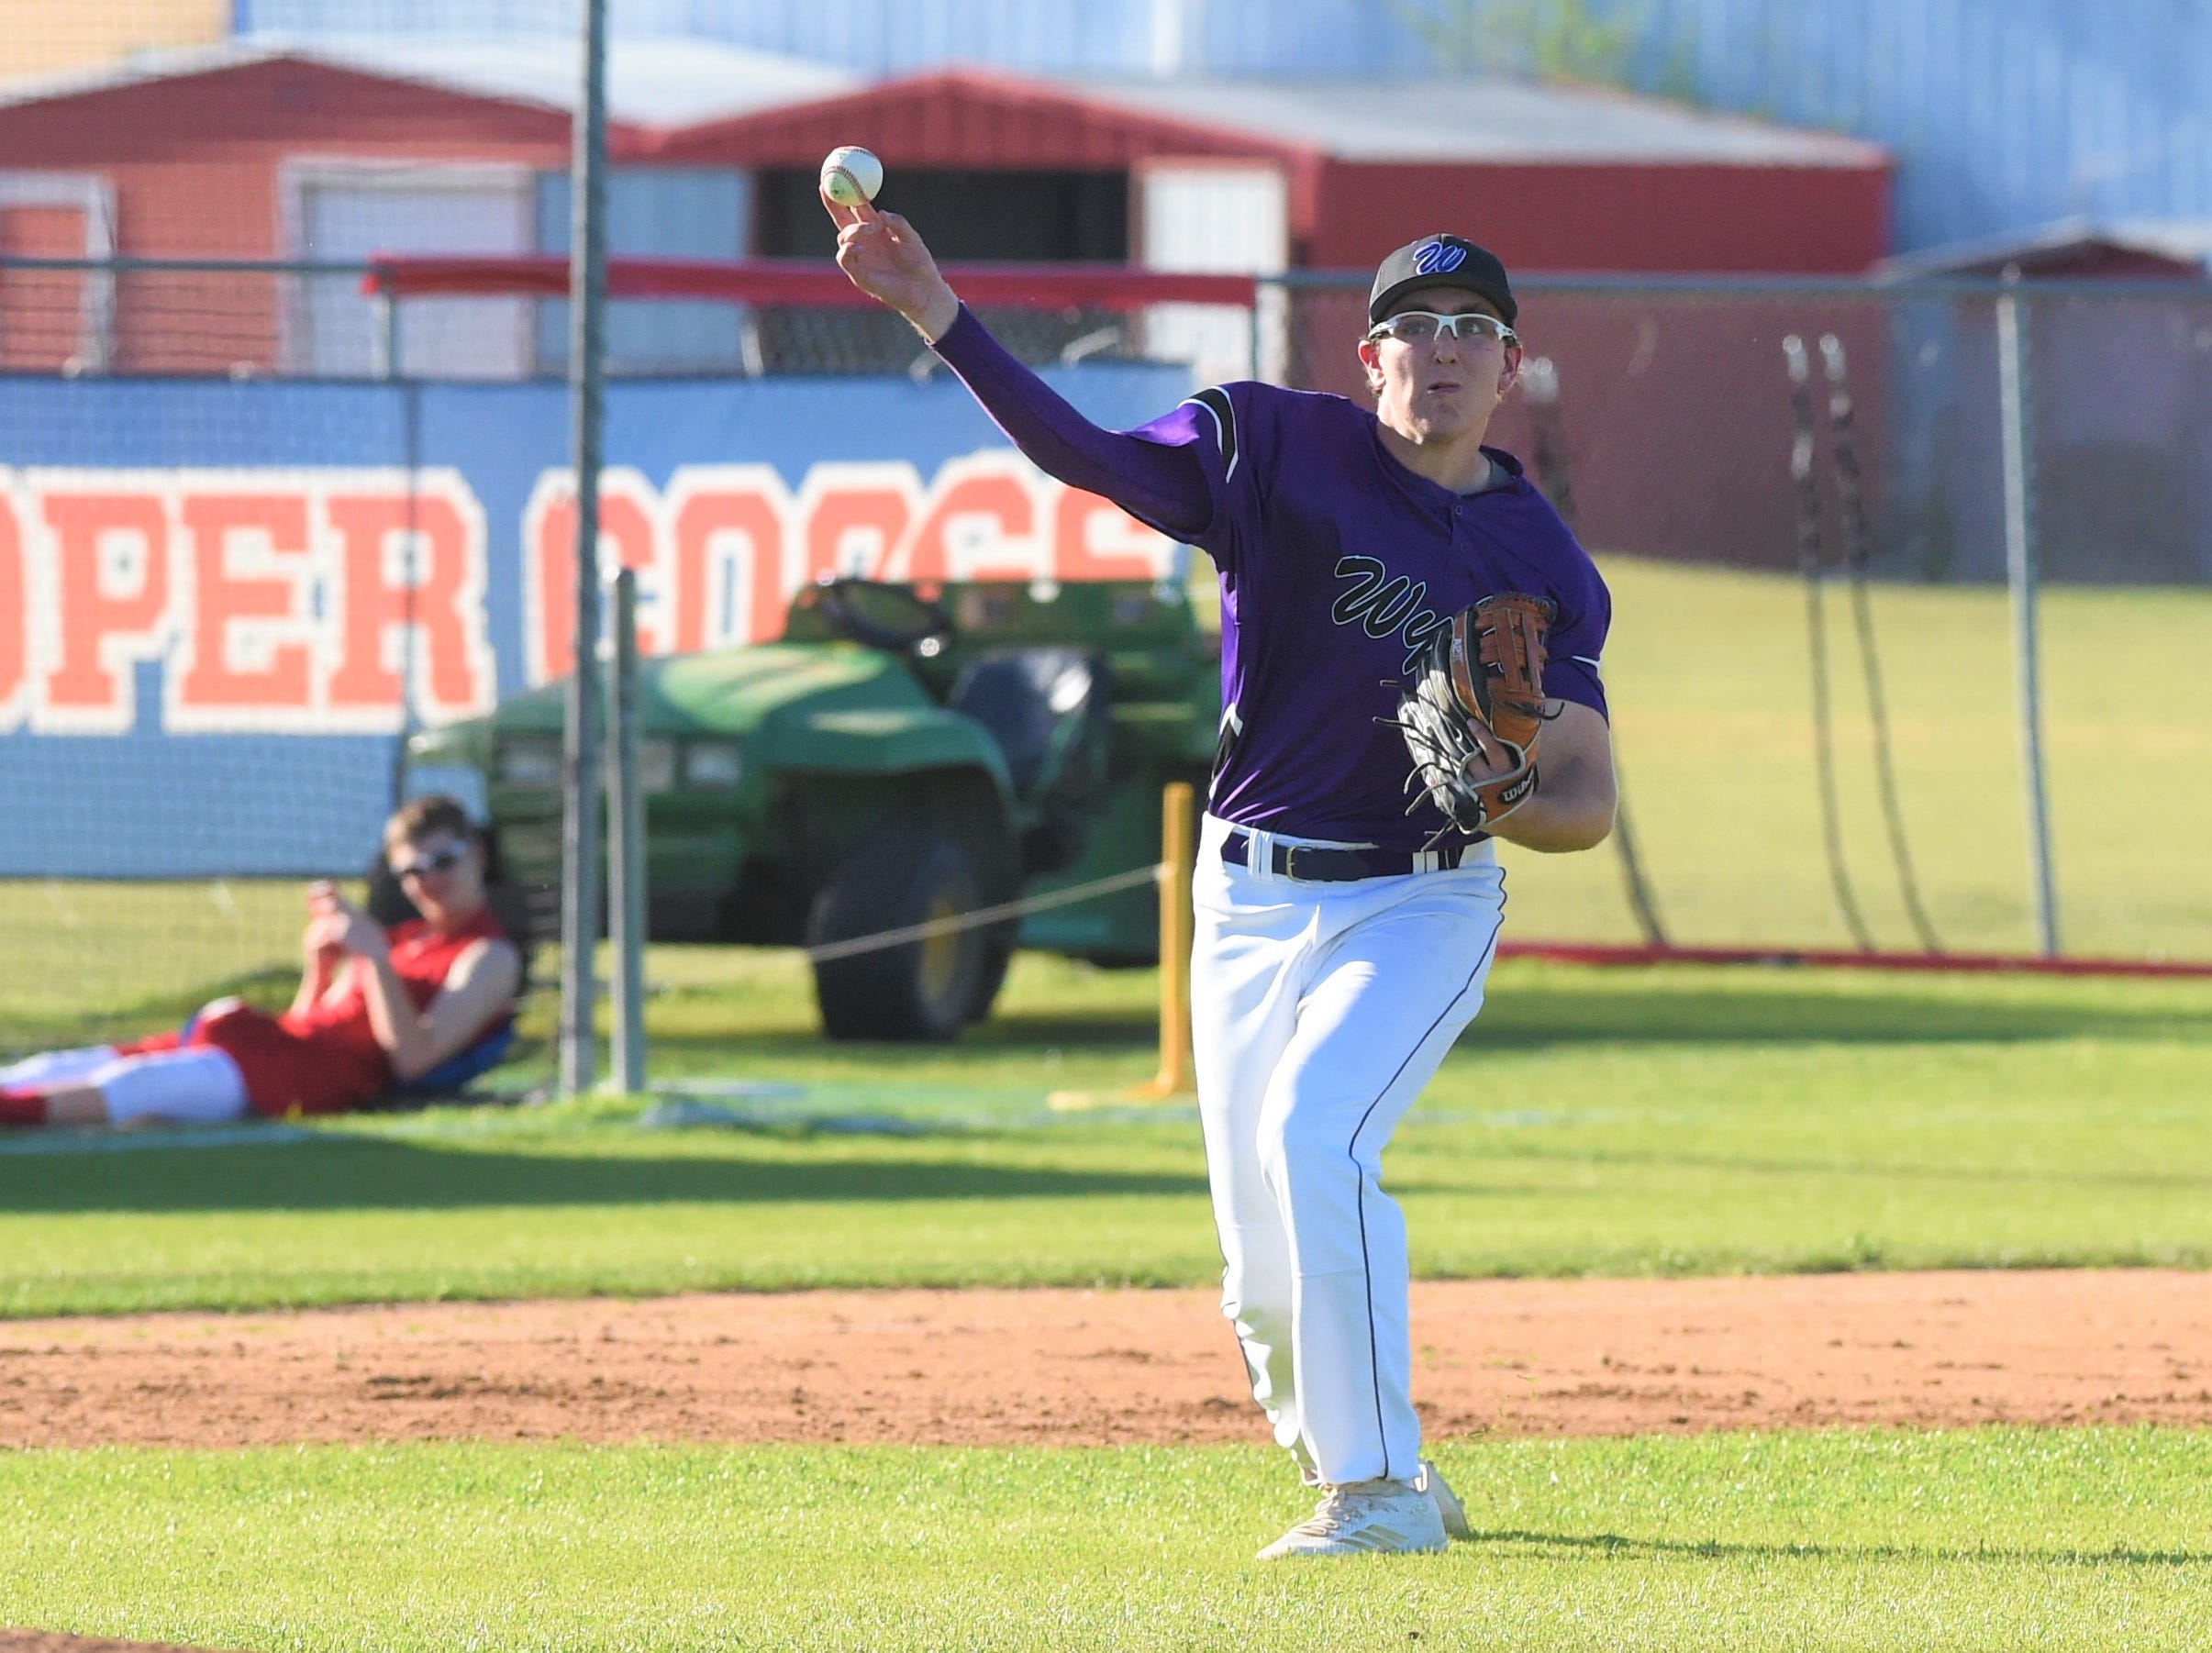 Wylie third baseman Kanon Doby (17) throws to first for an out against Cooper at Cougar Field on Tuesday, April 9, 2019. Doby had two hits, scored a run and drove in a run in the Bulldogs 11-5 win.